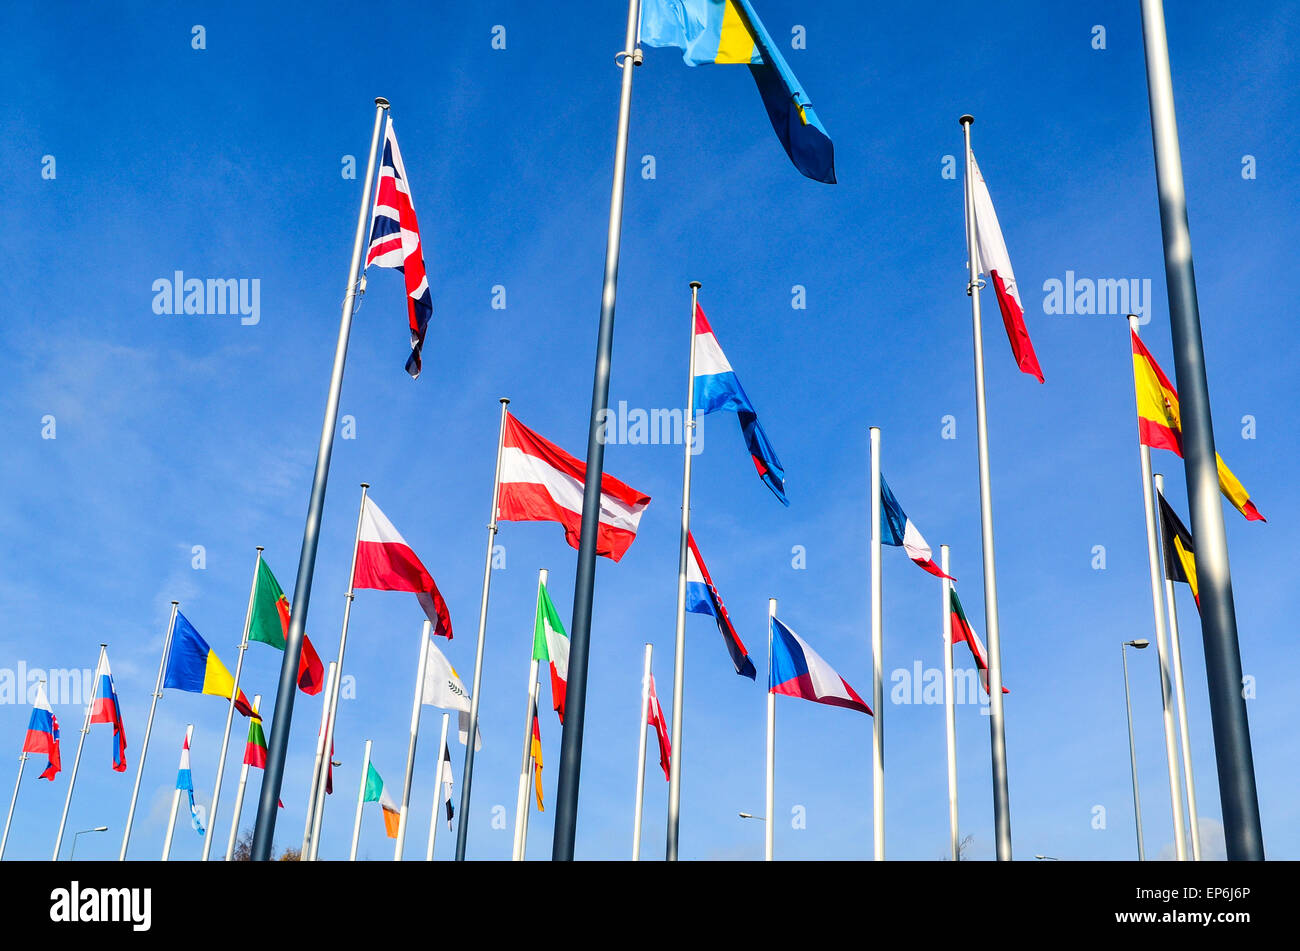 Union Jack and flags of the European Union countries at the European Commission, European Quarter, Luxembourg - Stock Image